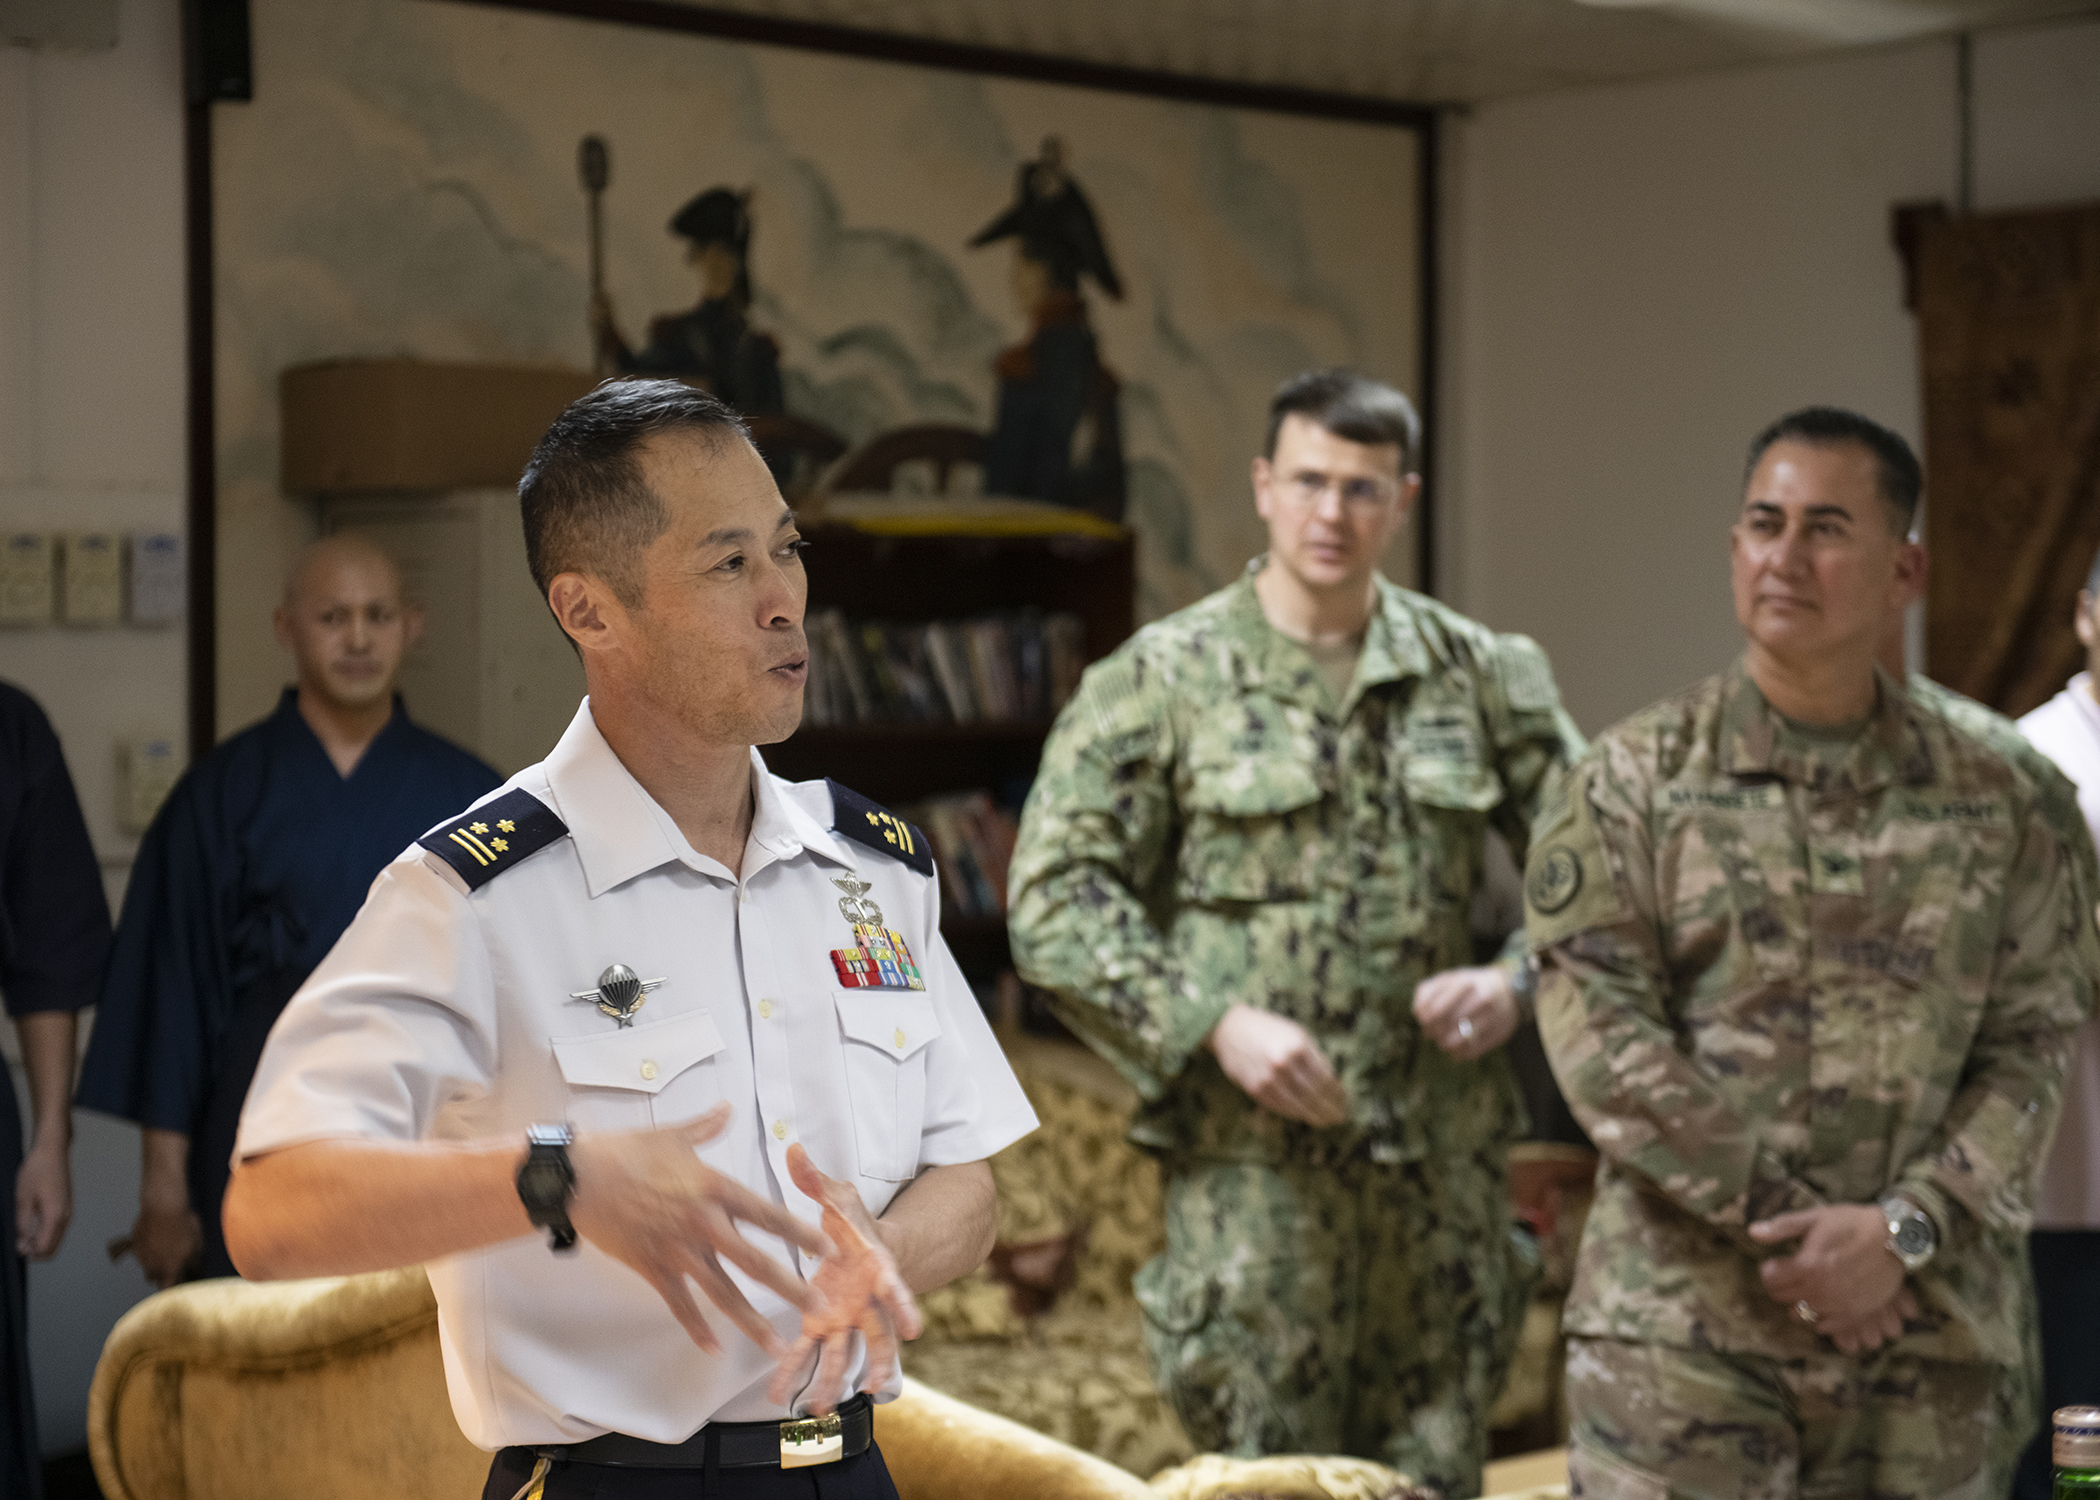 Japan Ground Self-Defense Force Col. Takuro Sekiya, commander of Deployment Support Group Counter-Piracy Enforcement, gives opening remarks at a cultural exchange event led by Japan Ground Self-Defense Force leadership at Camp Lemonnier, Djibouti, Nov. 28, 2018. Multinational military partners affiliated with Camp Lemonnier hold monthly exchange events to strengthen alliances and attract new partners in the combined joint military environment. (U.S. Air Force photo by Tech. Sgt. Shawn Nickel)